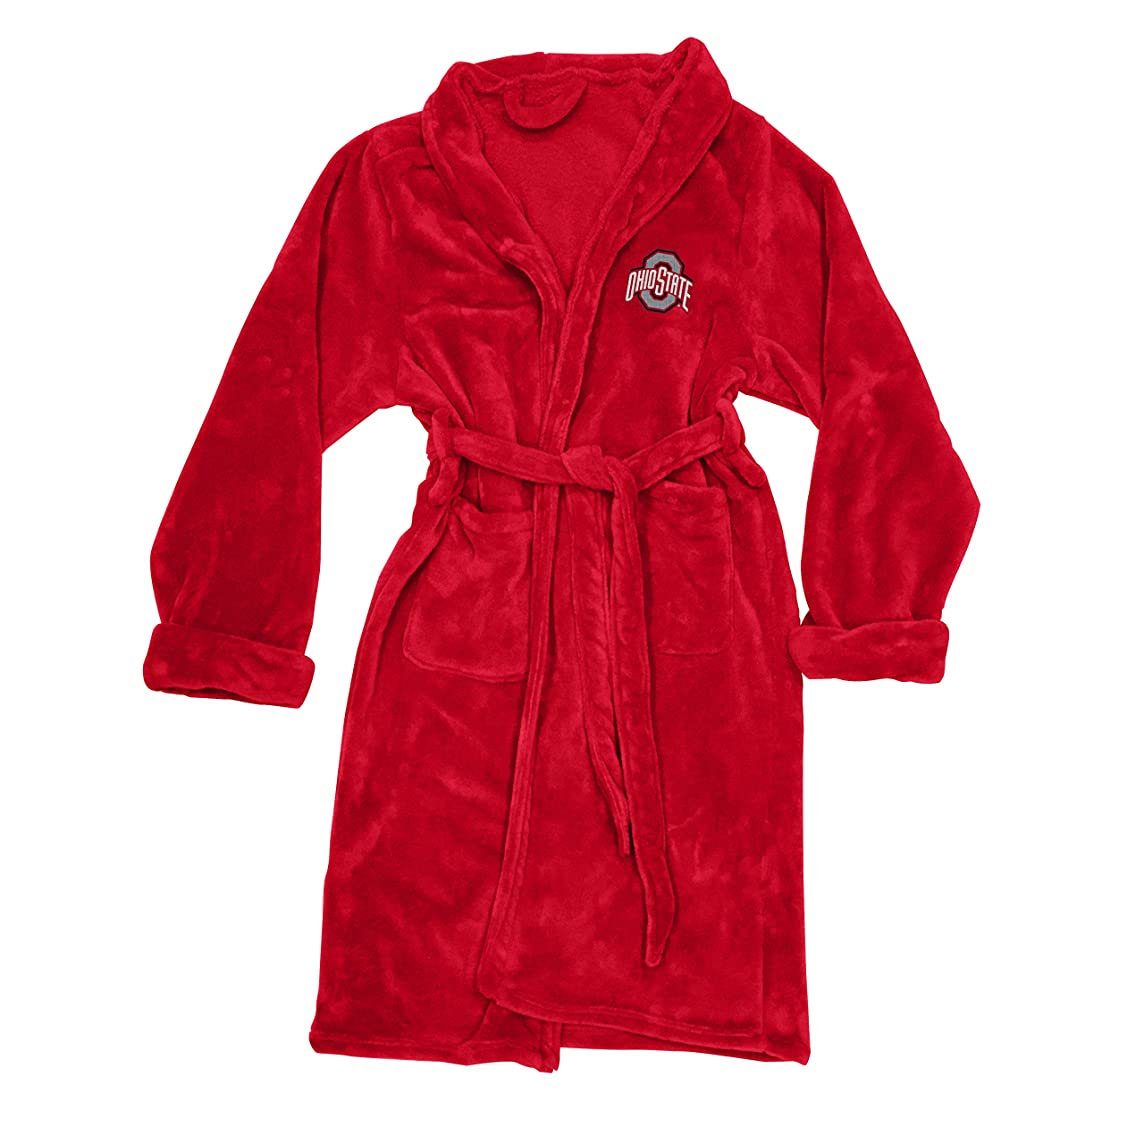 The Northwest Company Officially Licensed NCAA Ohio State Buckeyes Men's Silk Touch Lounge Robe, Large/X-Large